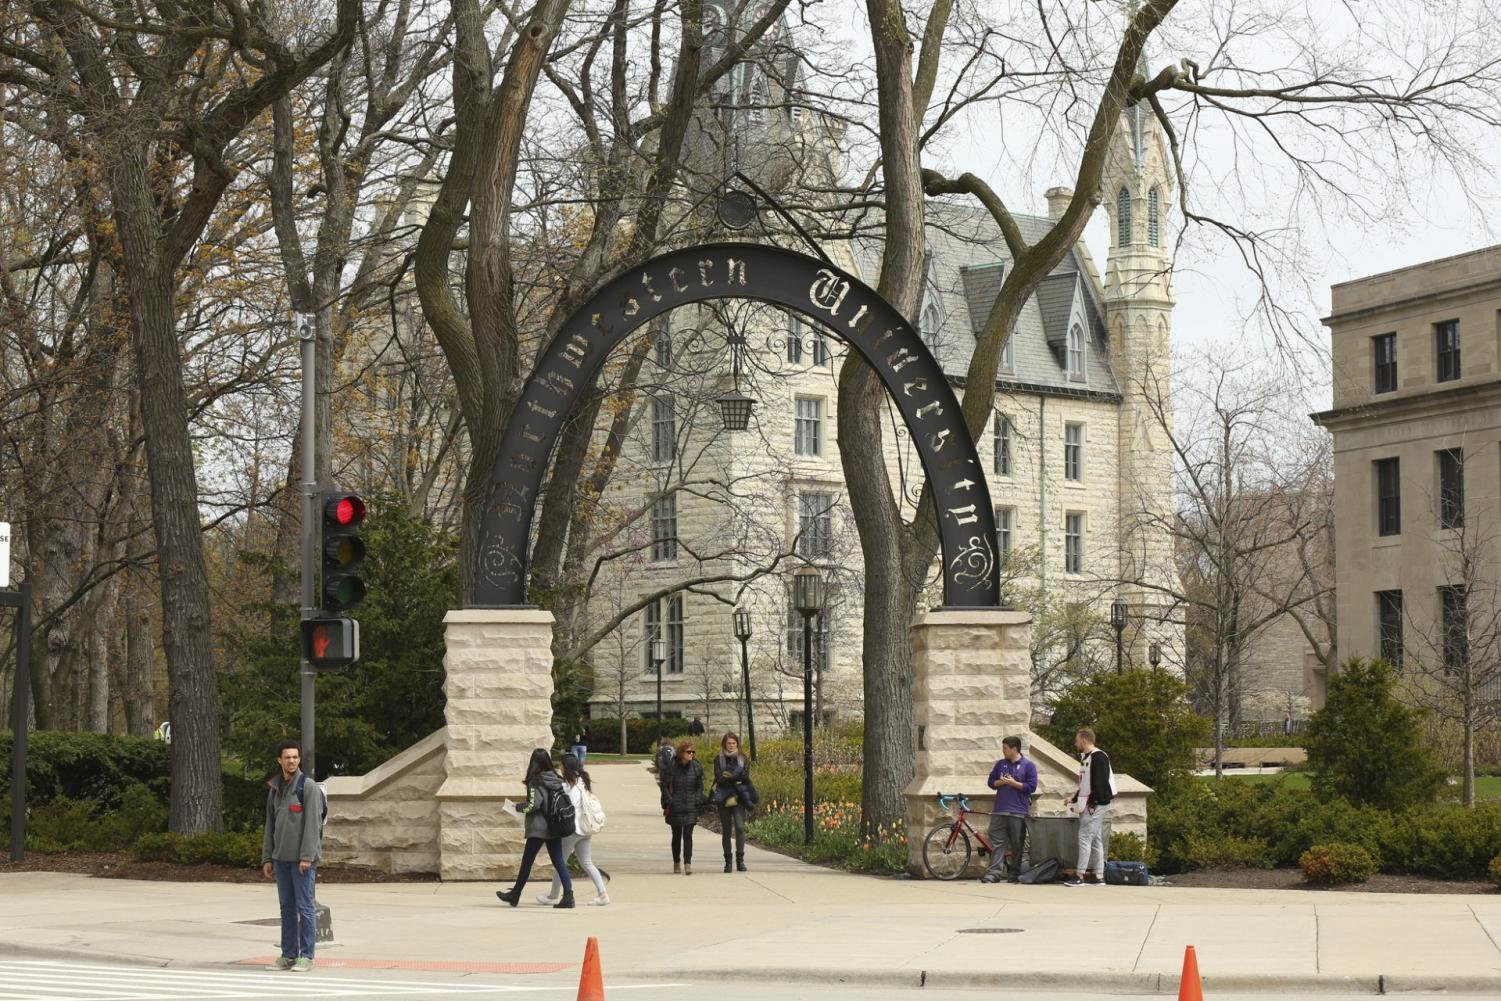 In this Friday, April 29, 2016, photo, people stand near the entrance gate to Northwestern University in Evanston, Ill. Northwestern University's student newspaper is under fire. Their first critics came from within the campus as student activists questioned journalists' coverage of protests. Within days, editors decided to write a statement apologizing but their editorial prompted a second round of criticism from journalists around the country starting Monday, Nov. 11, 2019.